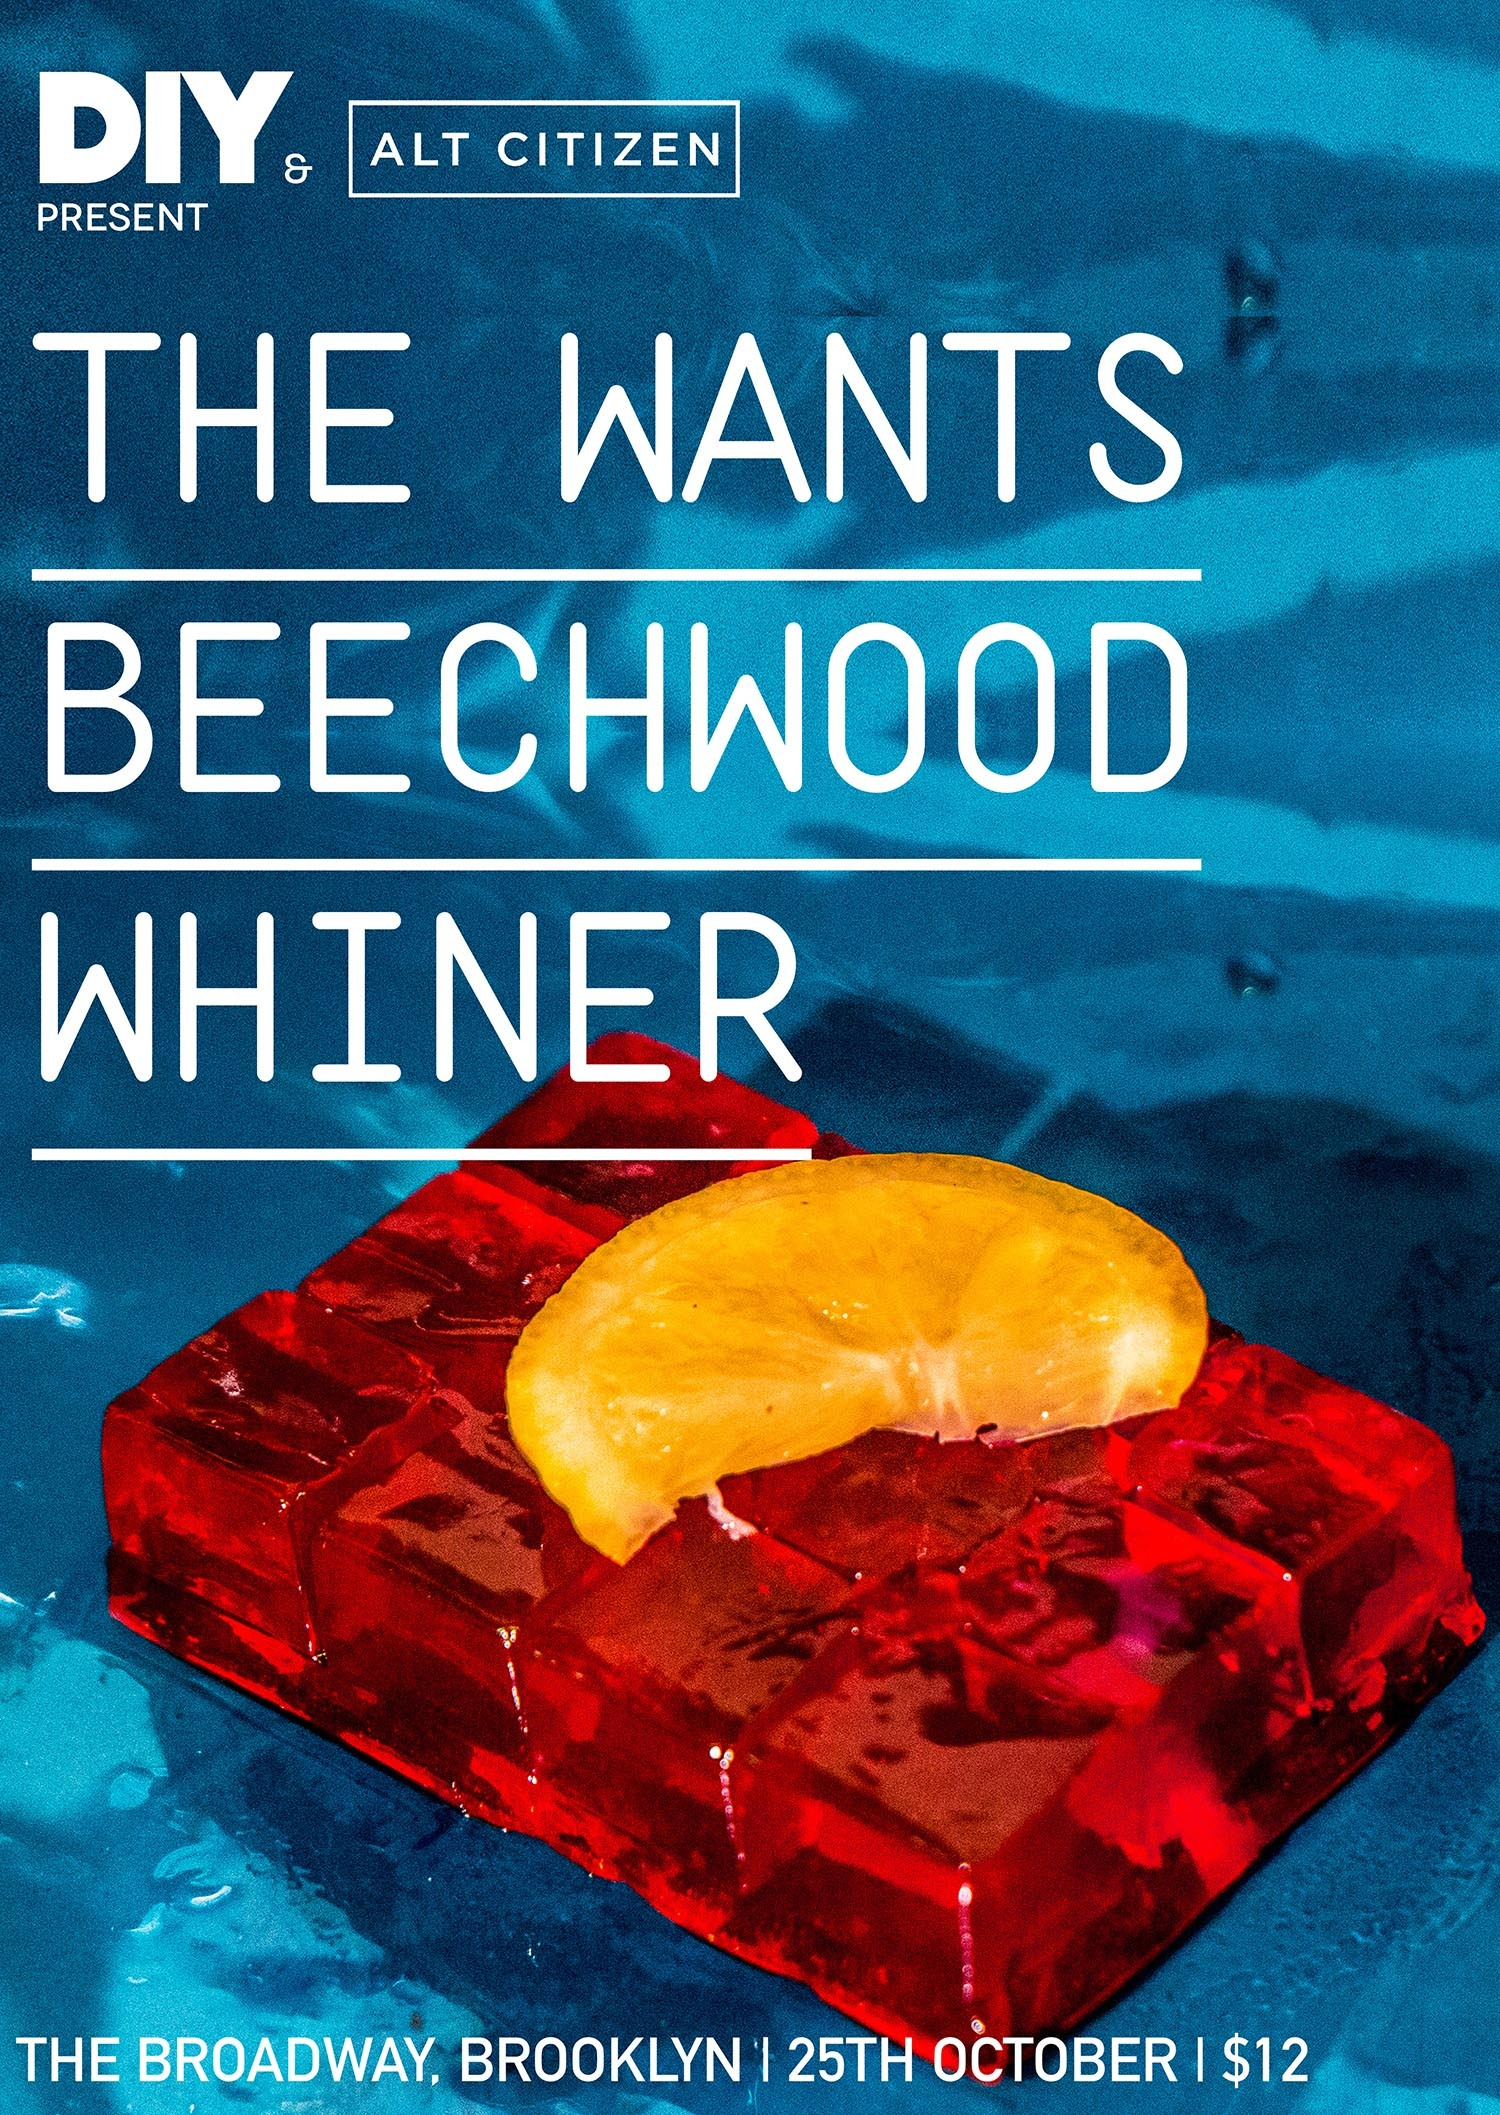 The Wants, Beechwood & Whiner for next DIY & Alt Citizen show